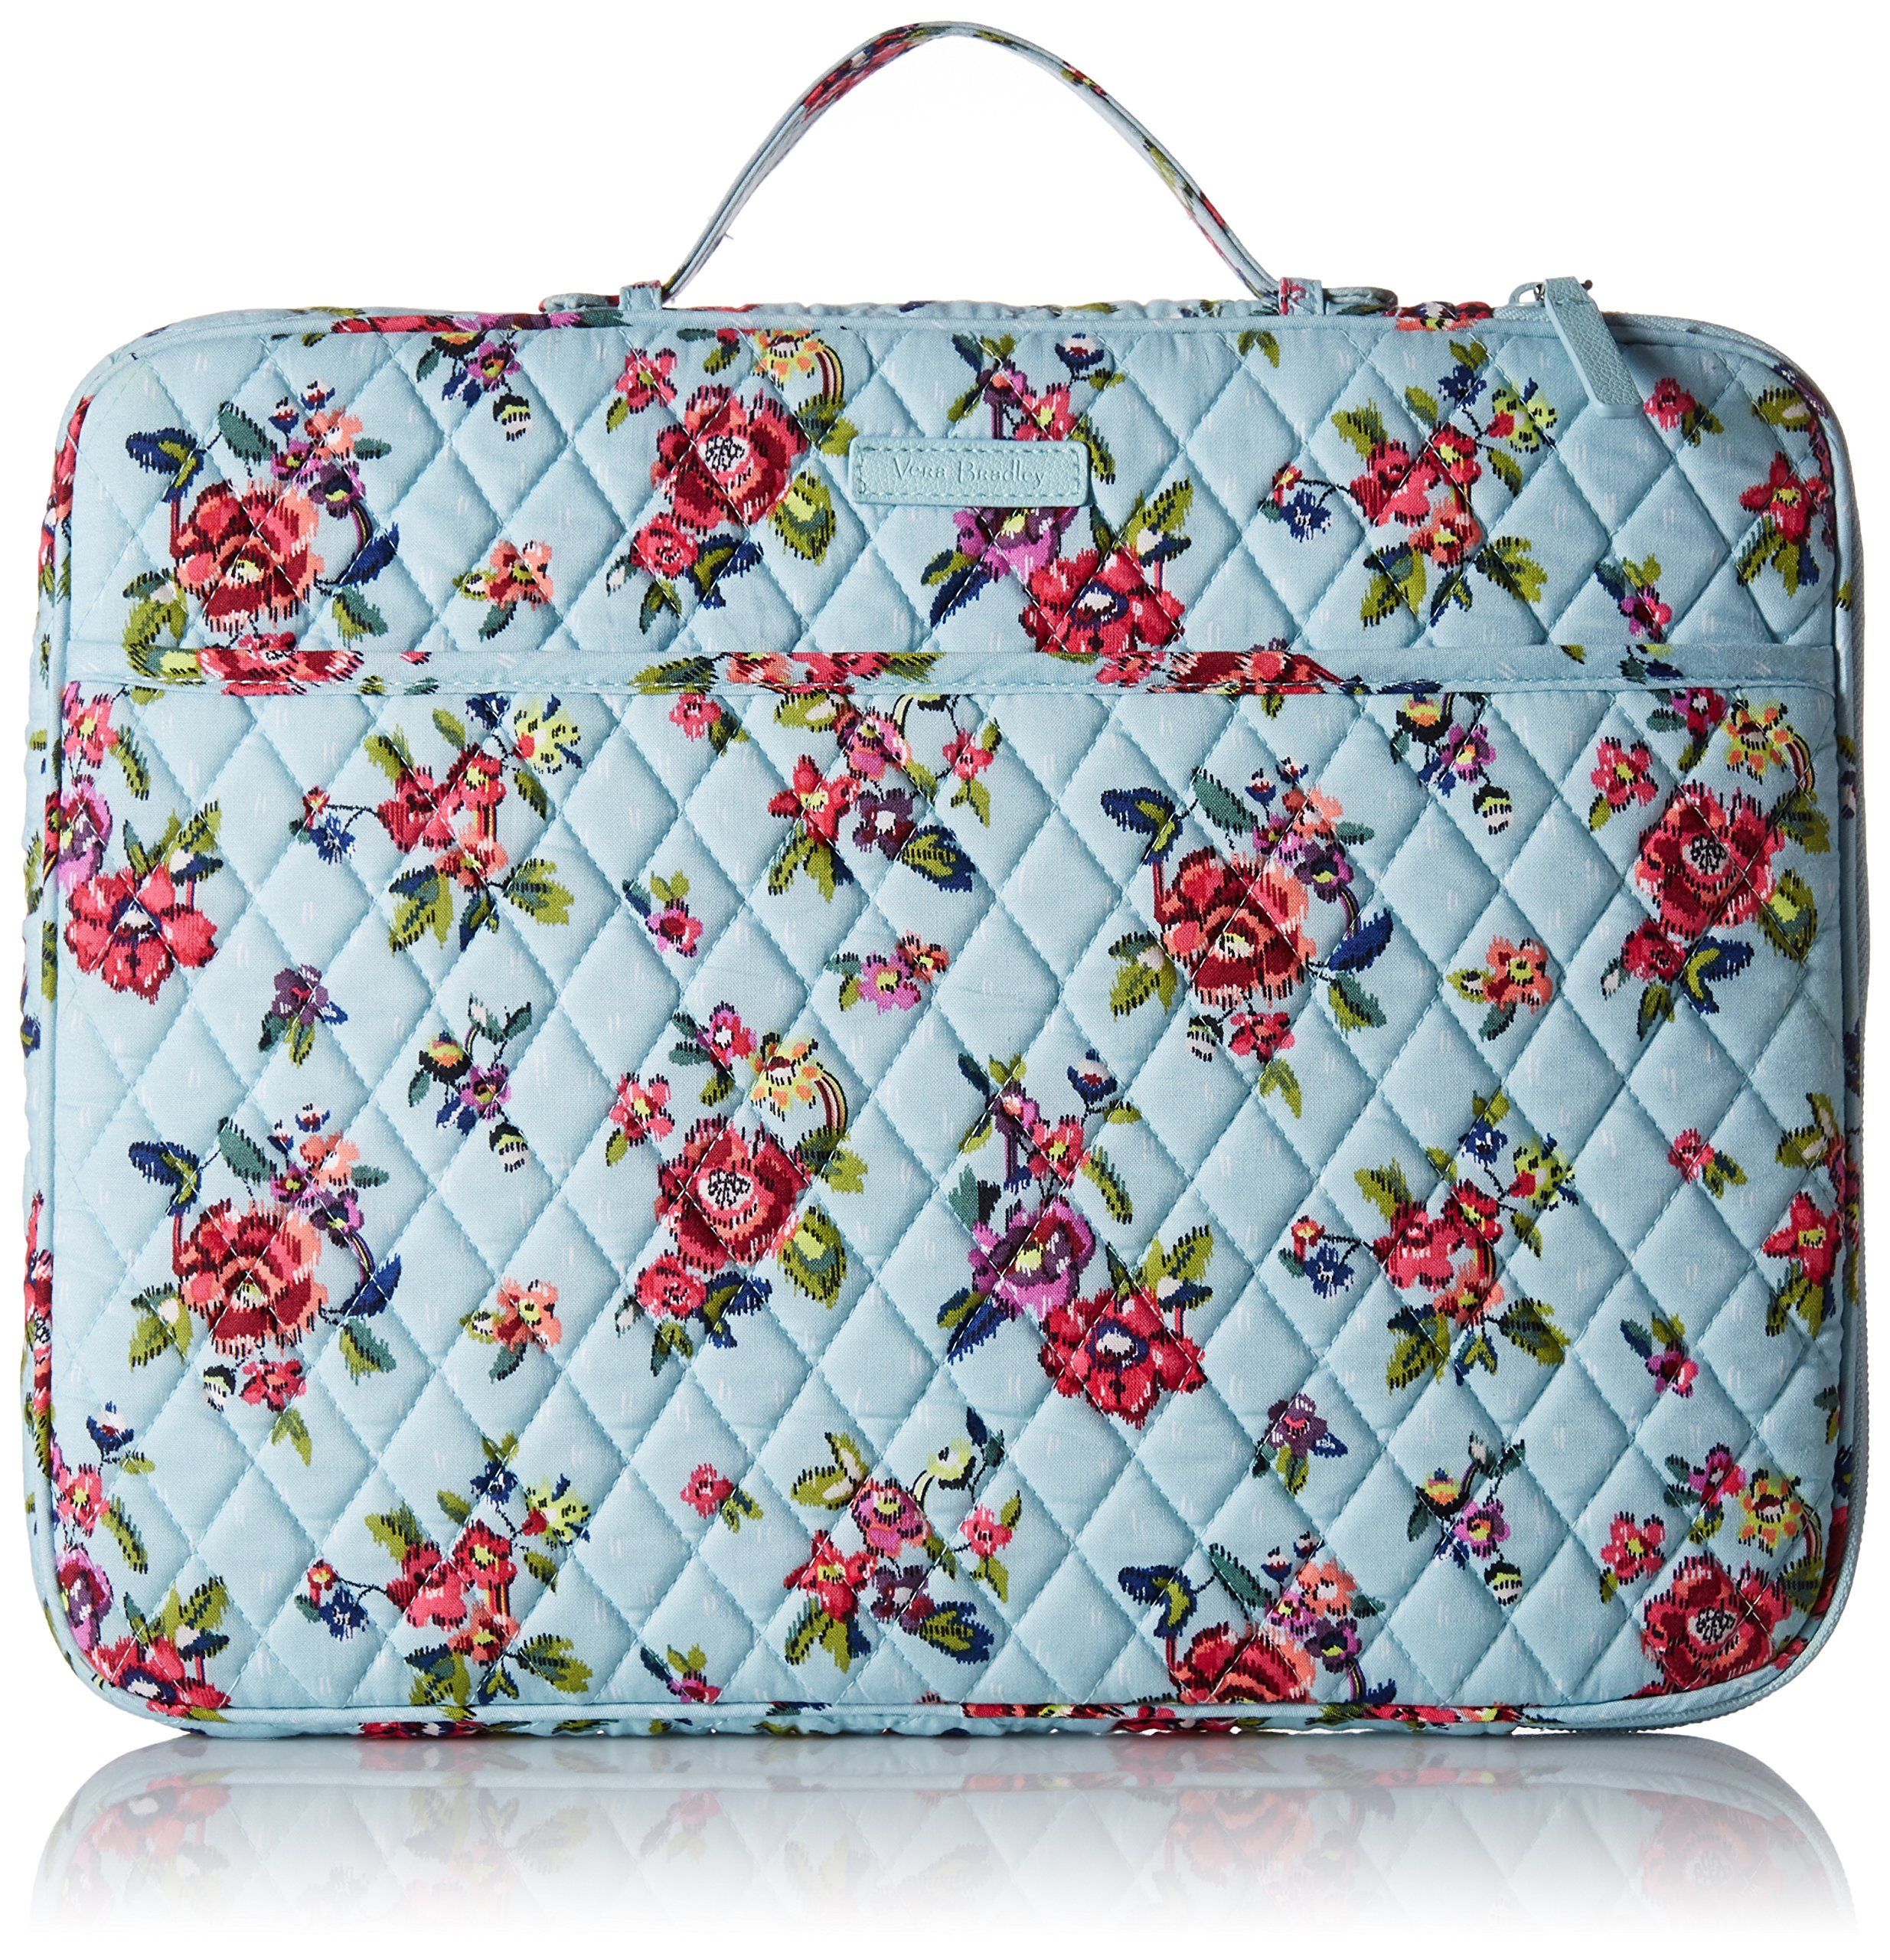 Vera Bradley Laptop Organizer, Signature Cotton, Water Bouquet